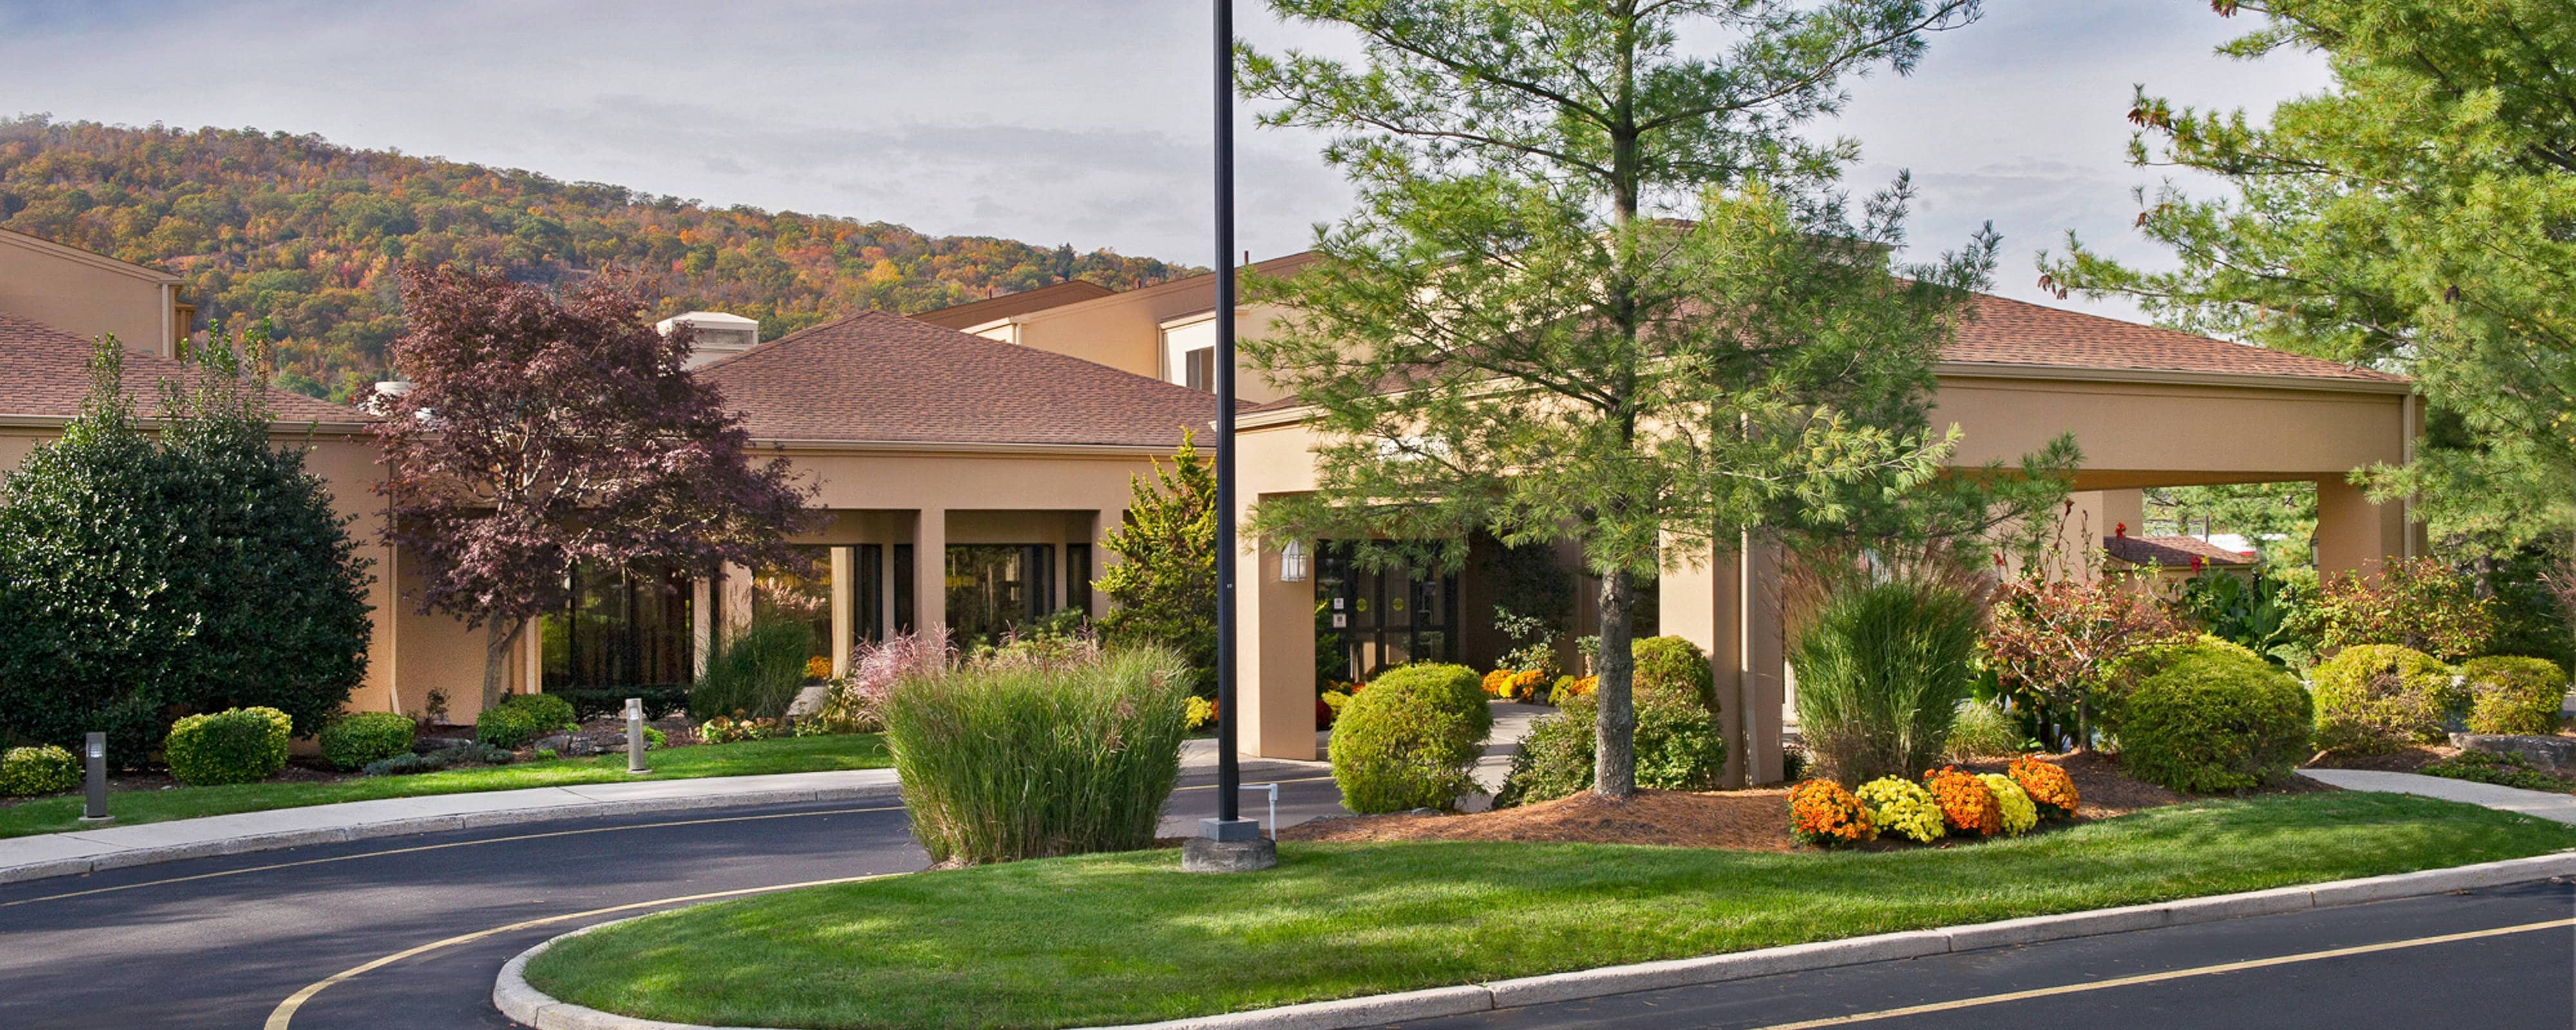 Courtyard Mahwah | Hotels in Mahwah | Hotel in Mahwah | Hotels in ...